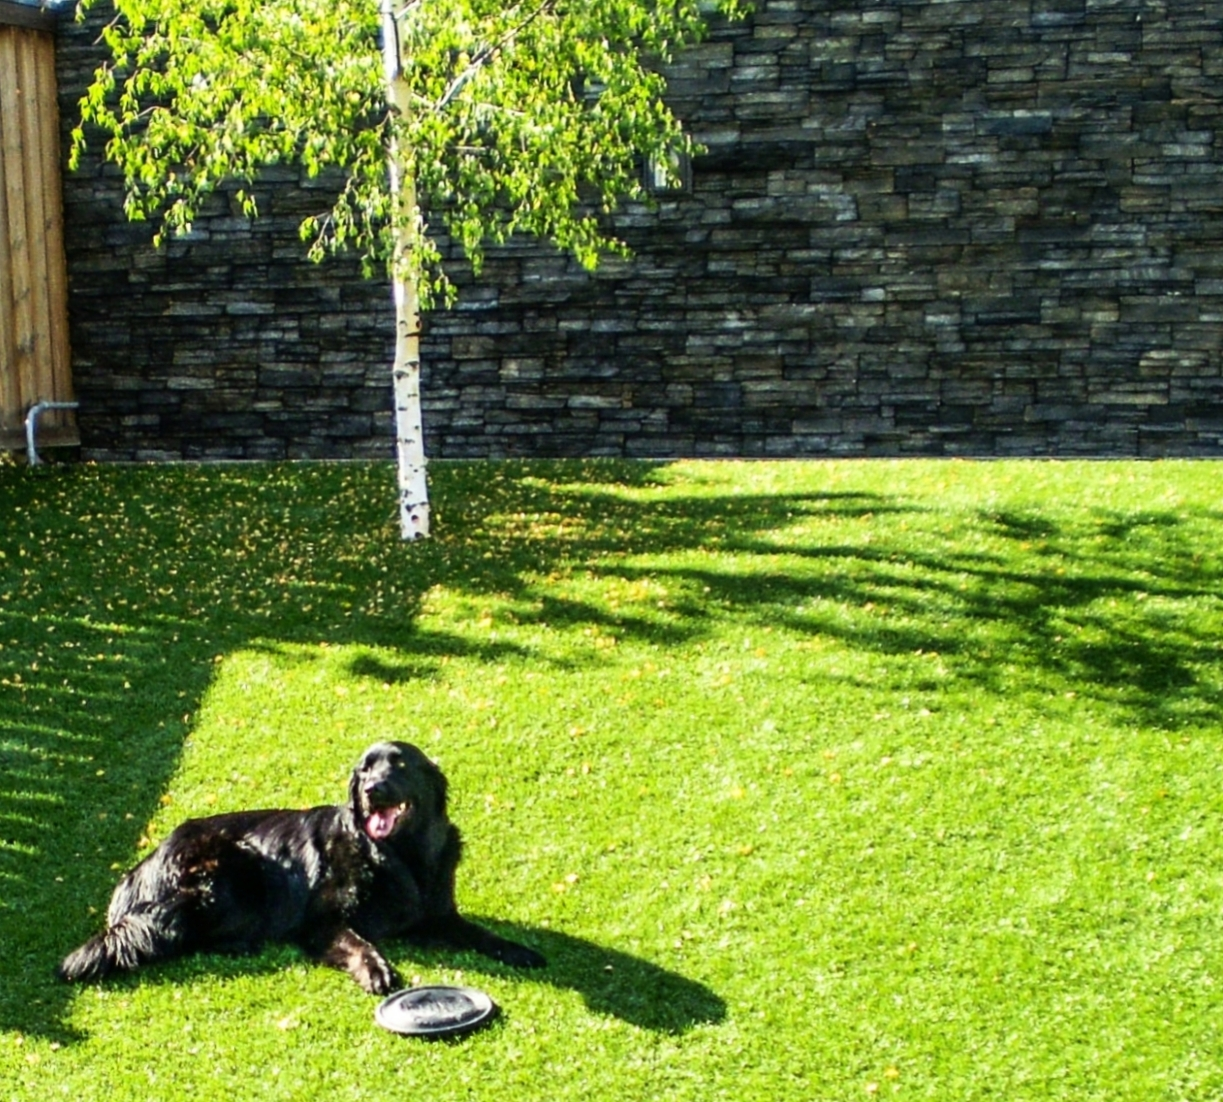 Residential Land and Pet Turf using Perfect Turf